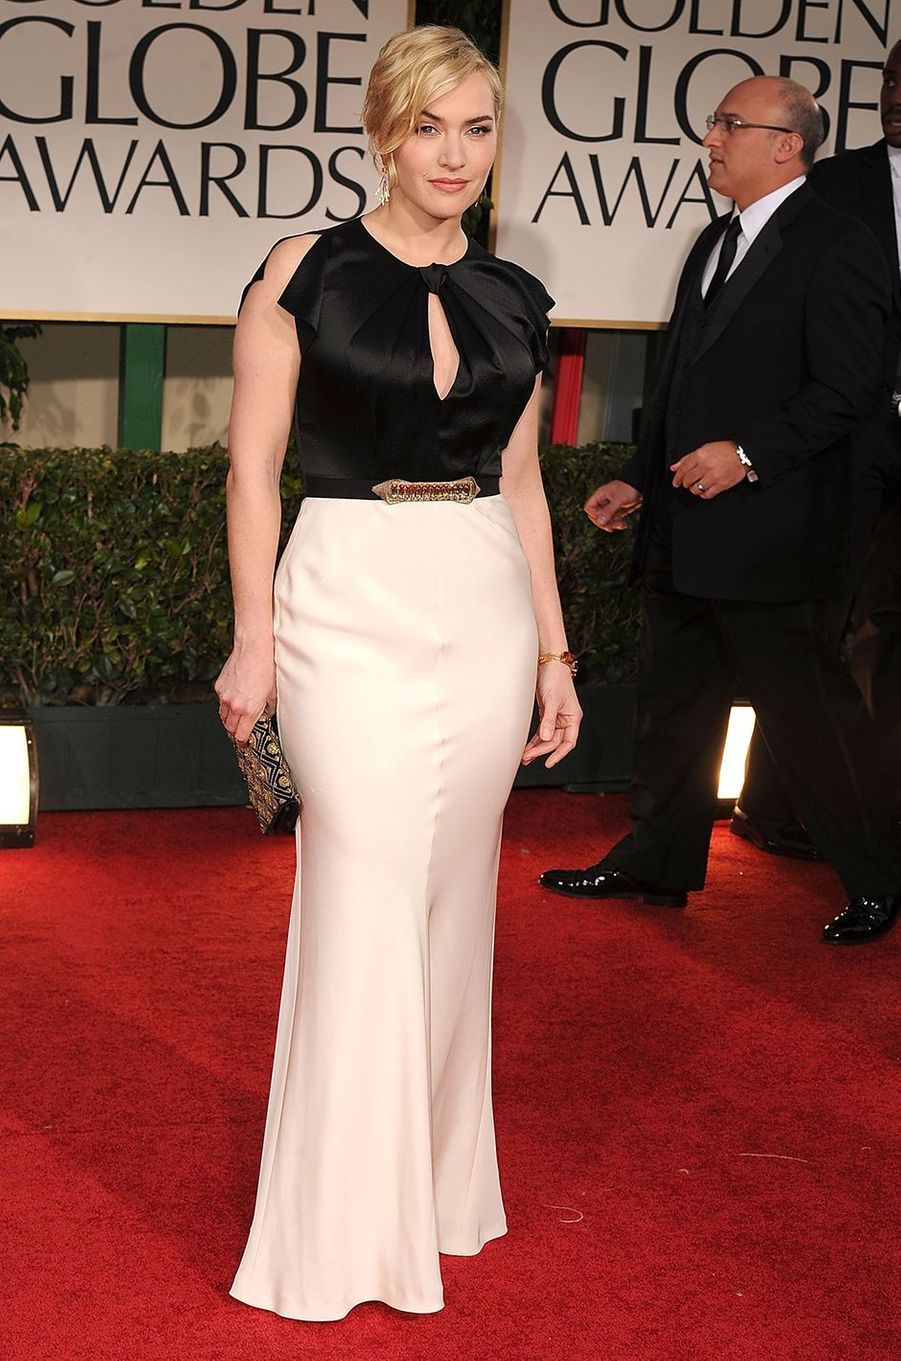 Kate Winslet aux Golden Globes à Los Angeles en janvier 2012